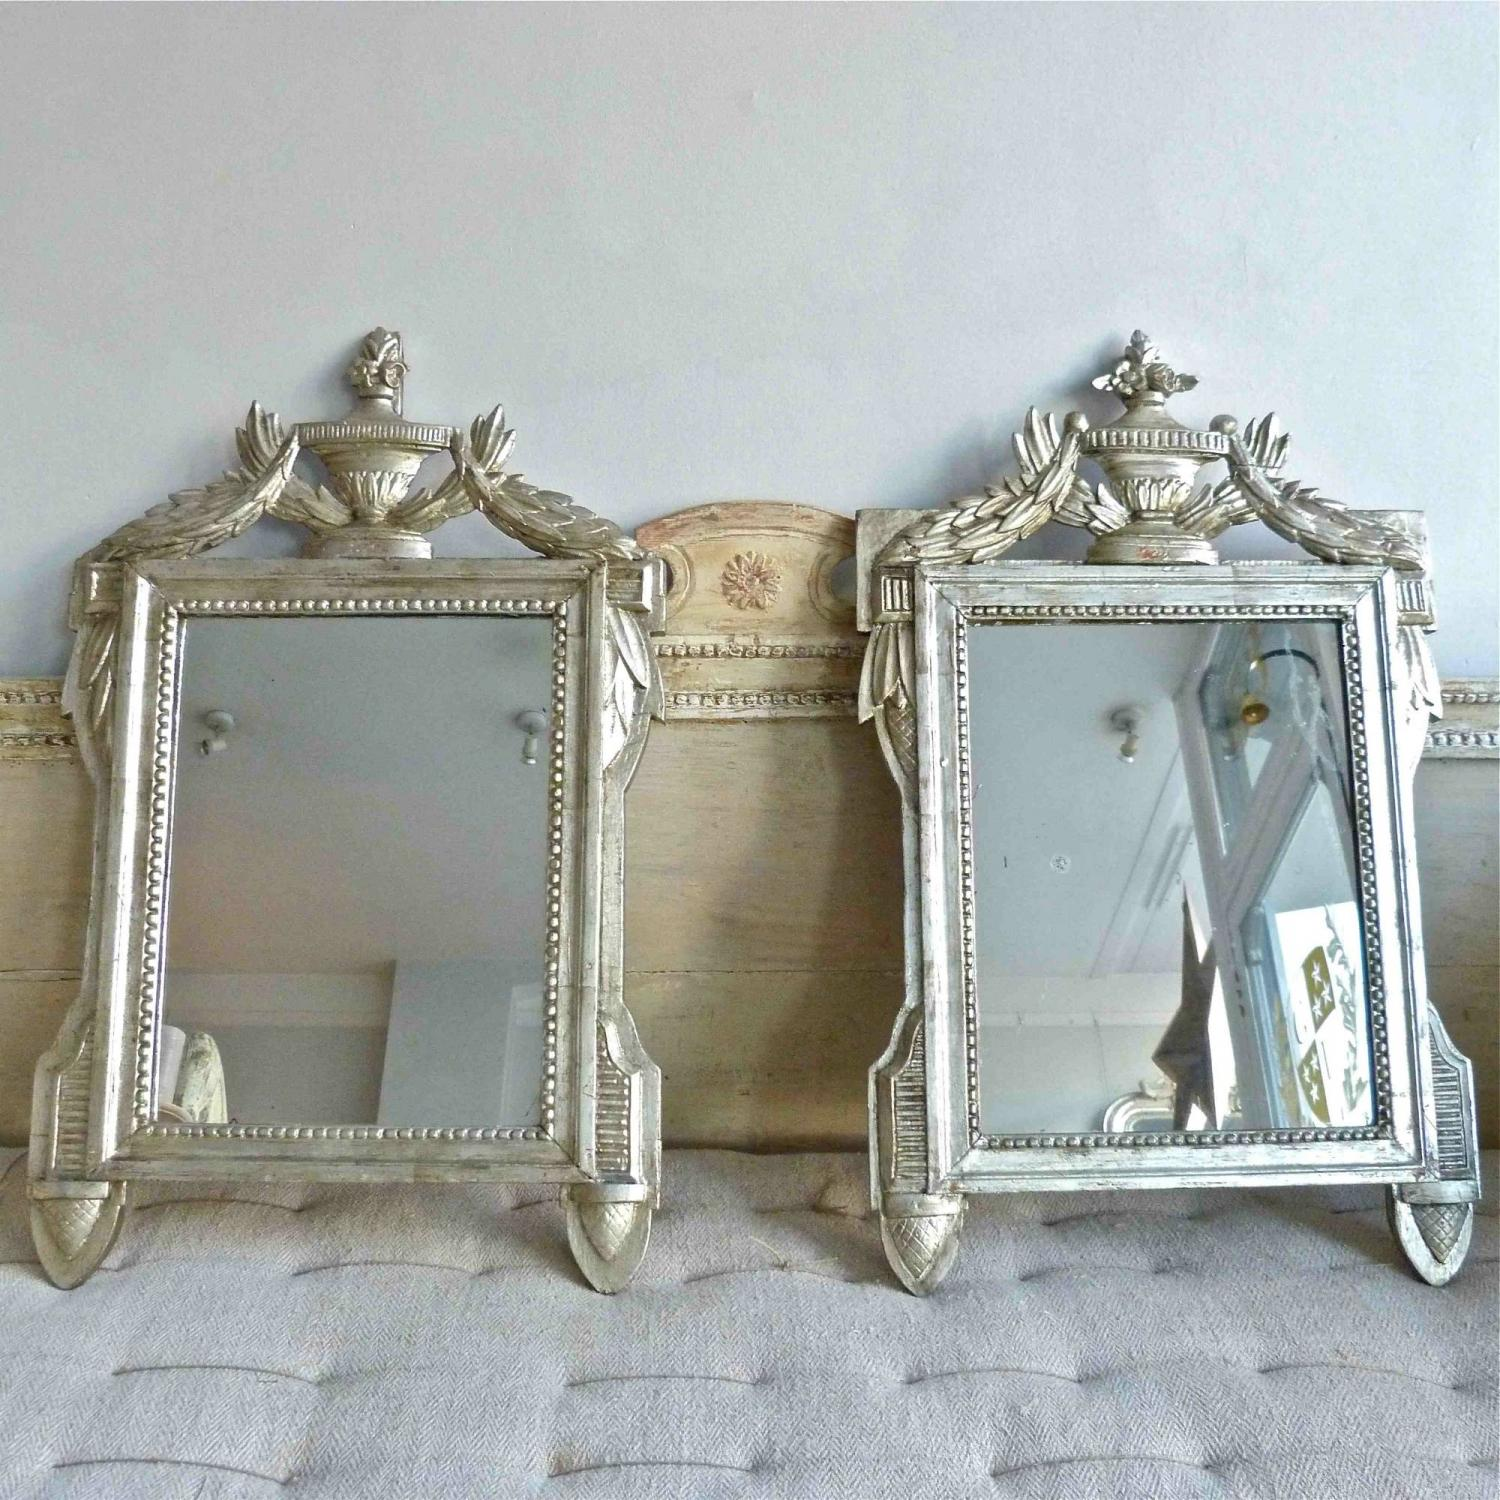 STUNNING PAIR OF DECORATIVE SILVER GILT ITALIAN MIRRORS